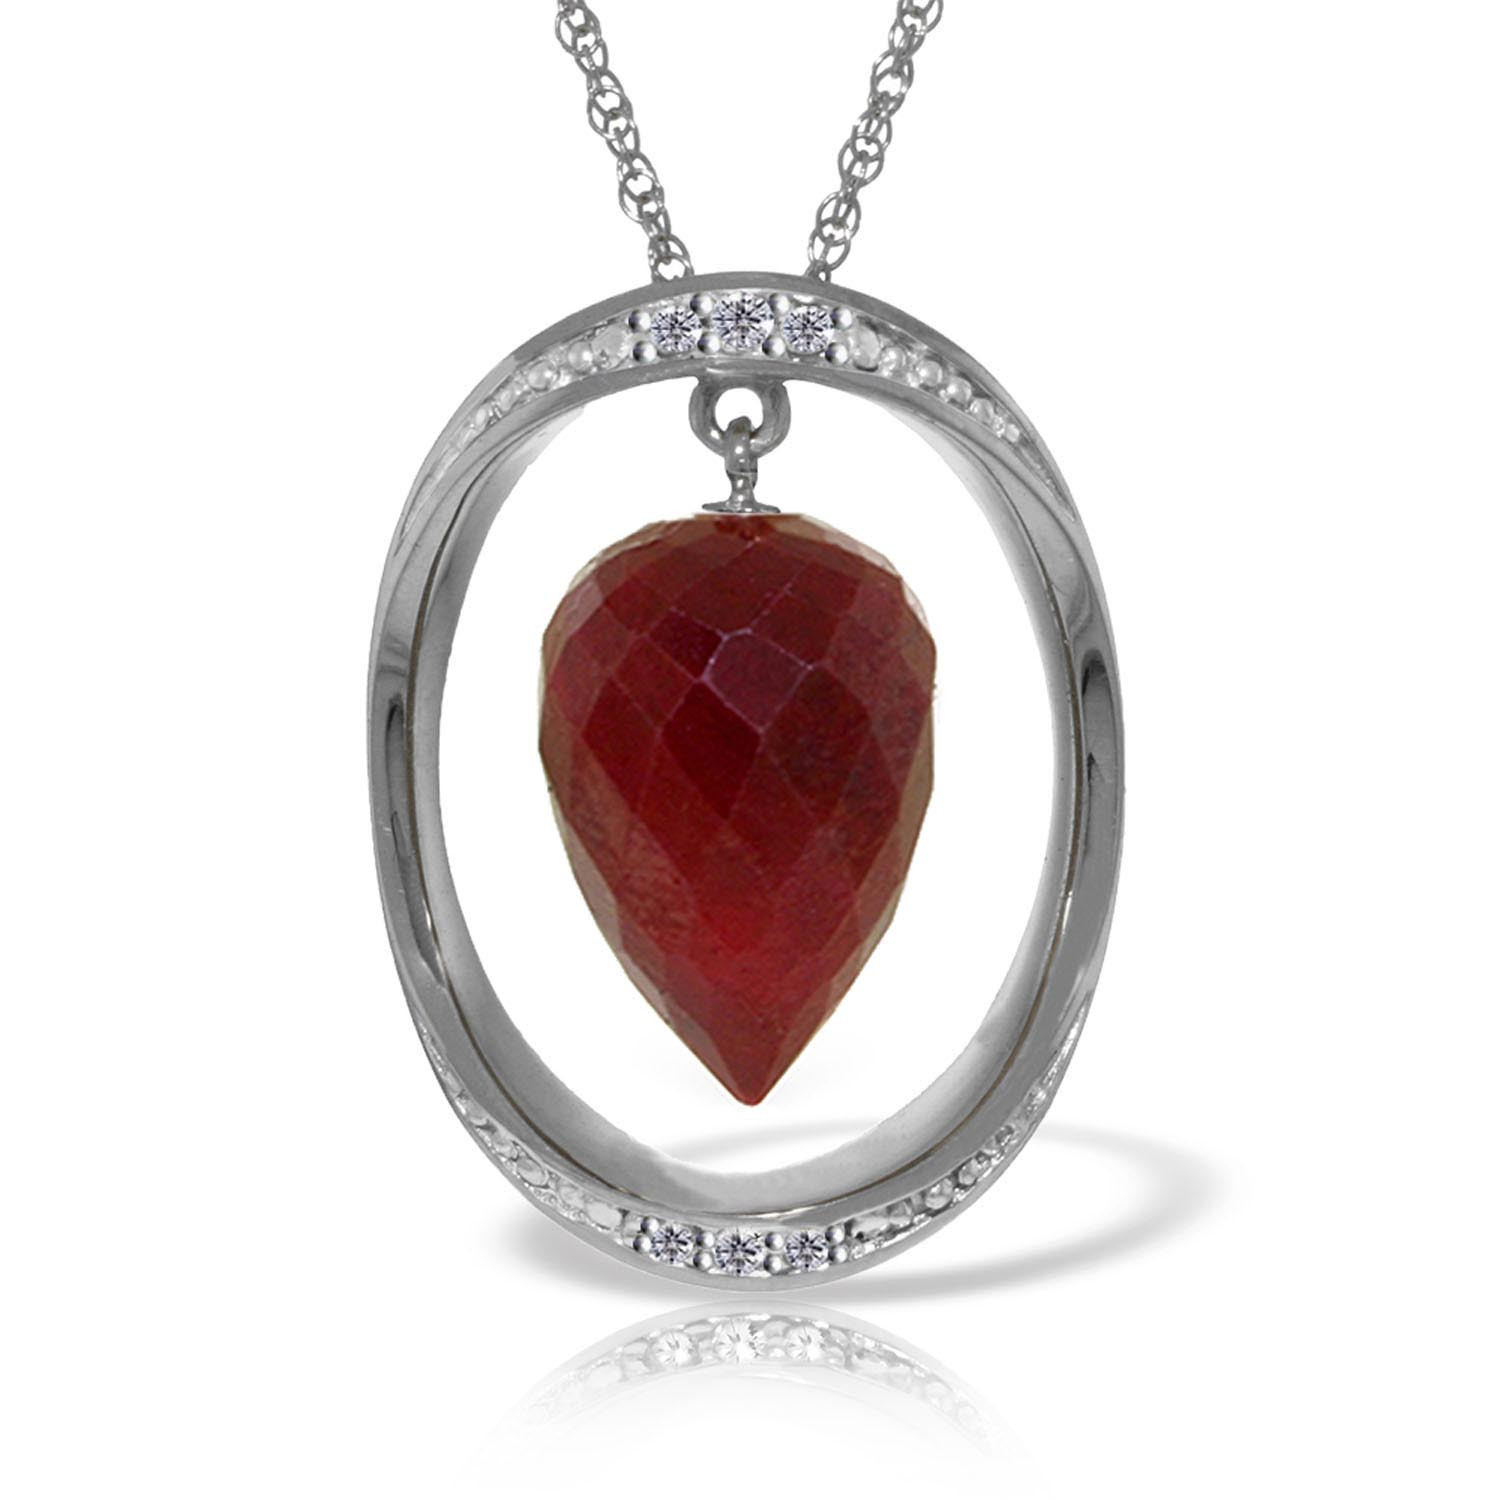 Ruby & Diamond Drop Pendant Necklace in 9ct White Gold